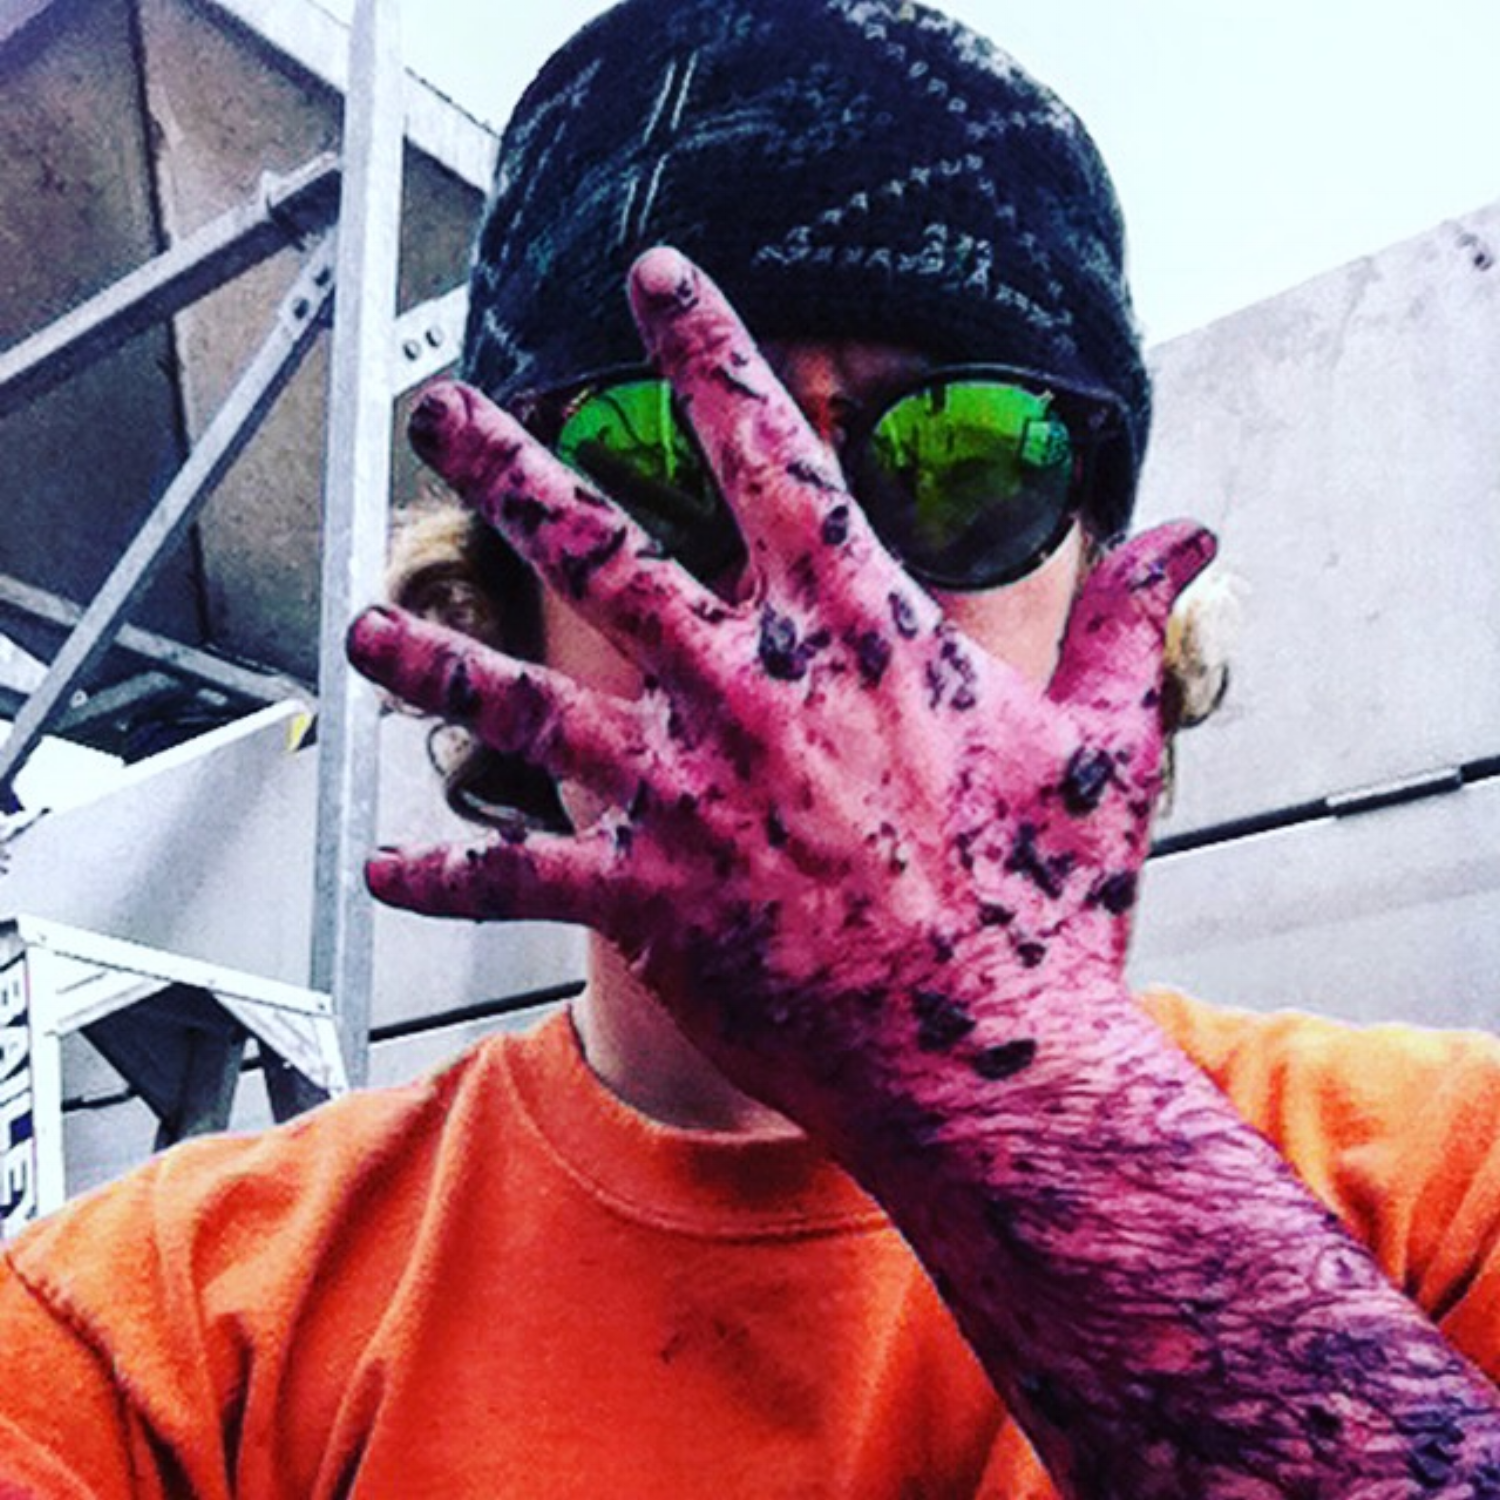 Pressing matters. Sybaritewino's Shiraz stained arm after filling the press.